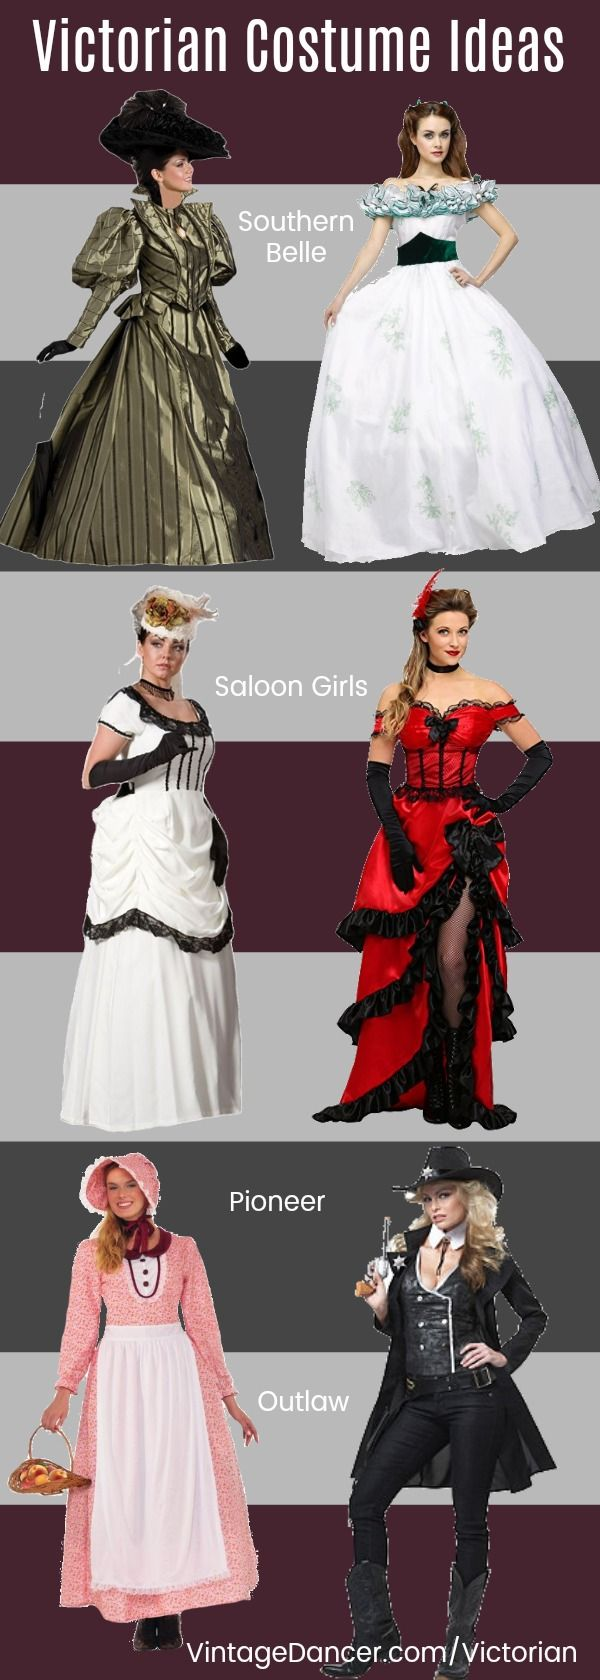 Classic Victorian costumes - Civil War, Southern Belle, Bustle era, Saloon girl, Pioneer, Wild West gunslinger and more